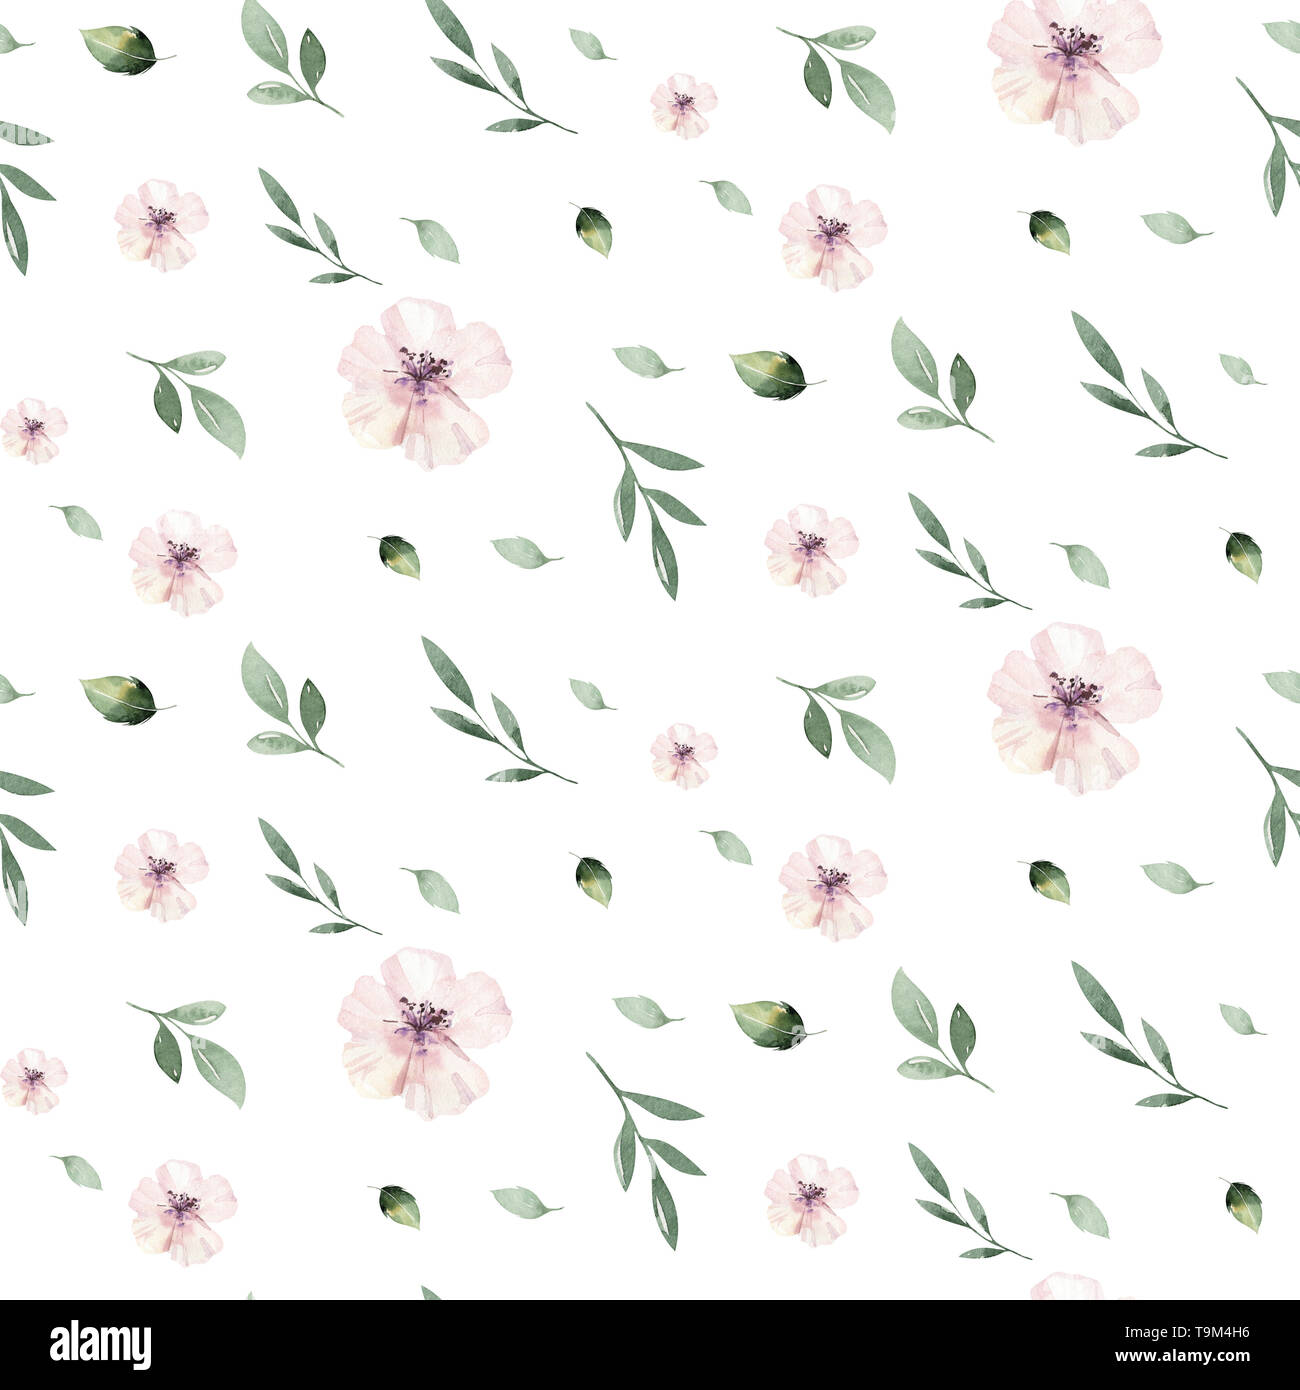 Watercolor Seamless Hand Illustrated Floral Pattern With Floral